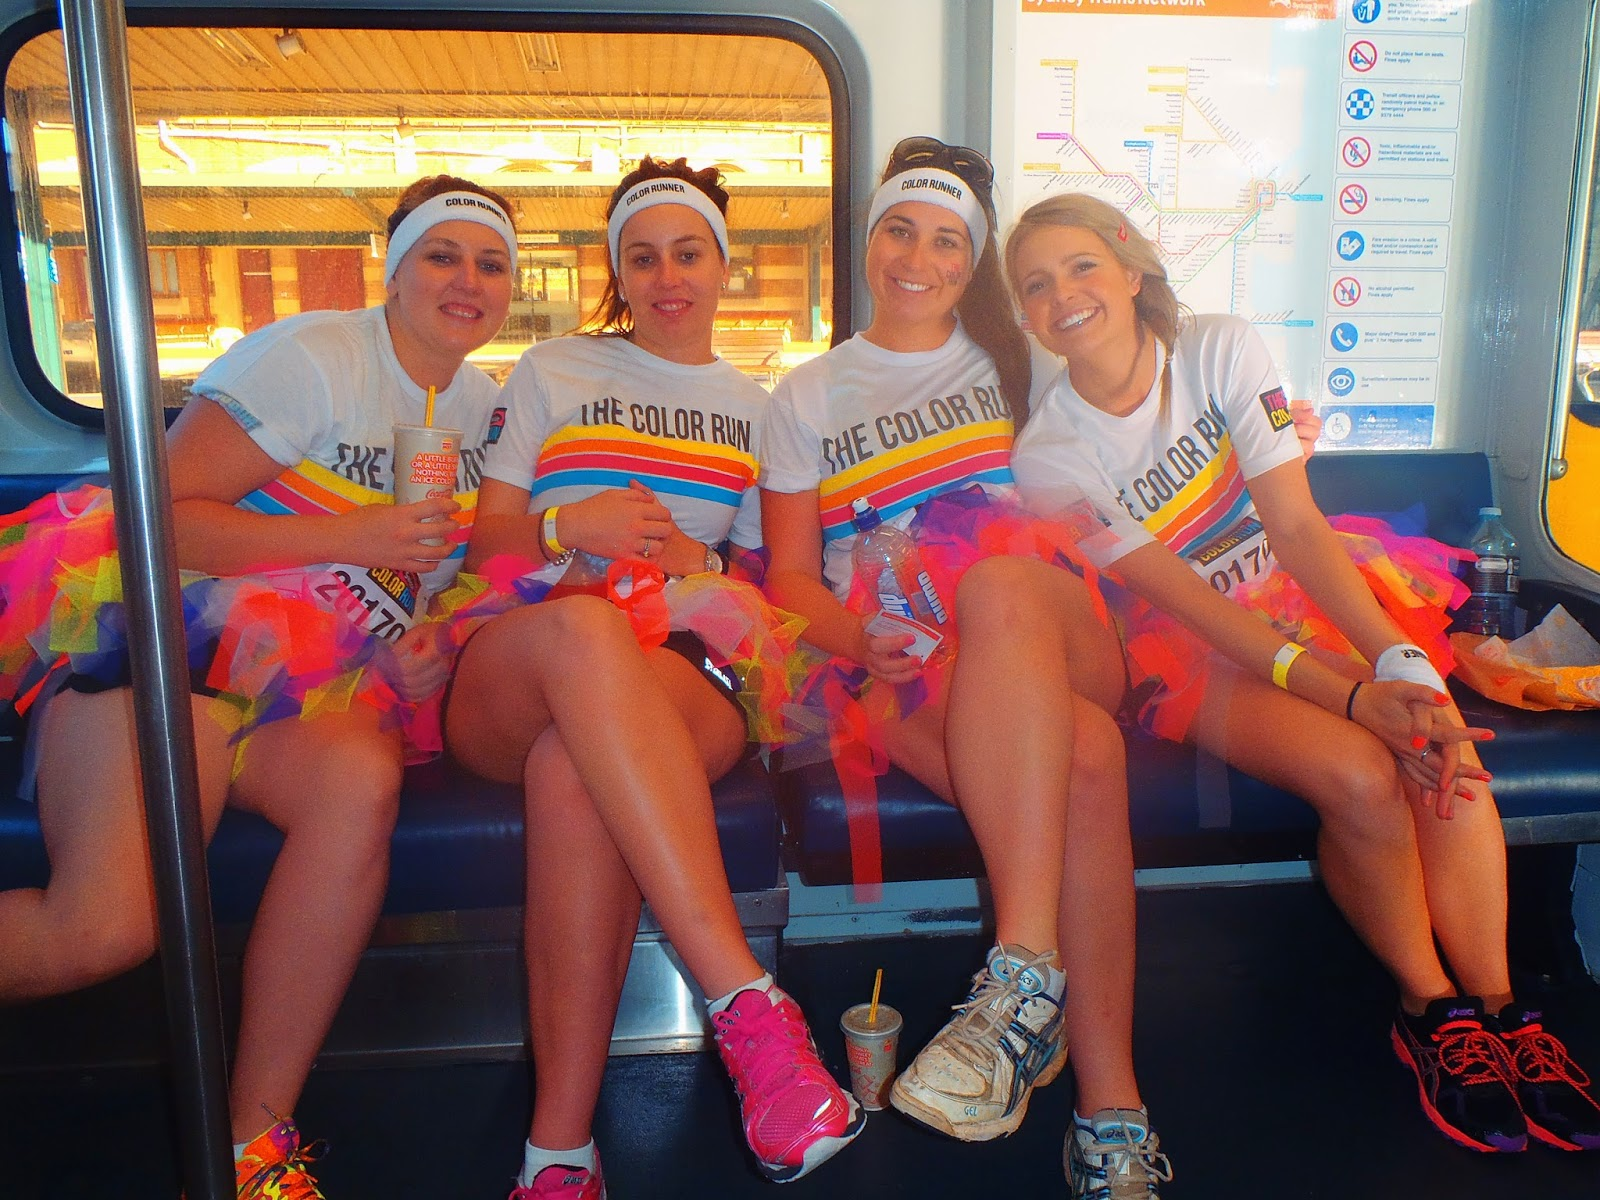 4 of us on the train in our bright tutus